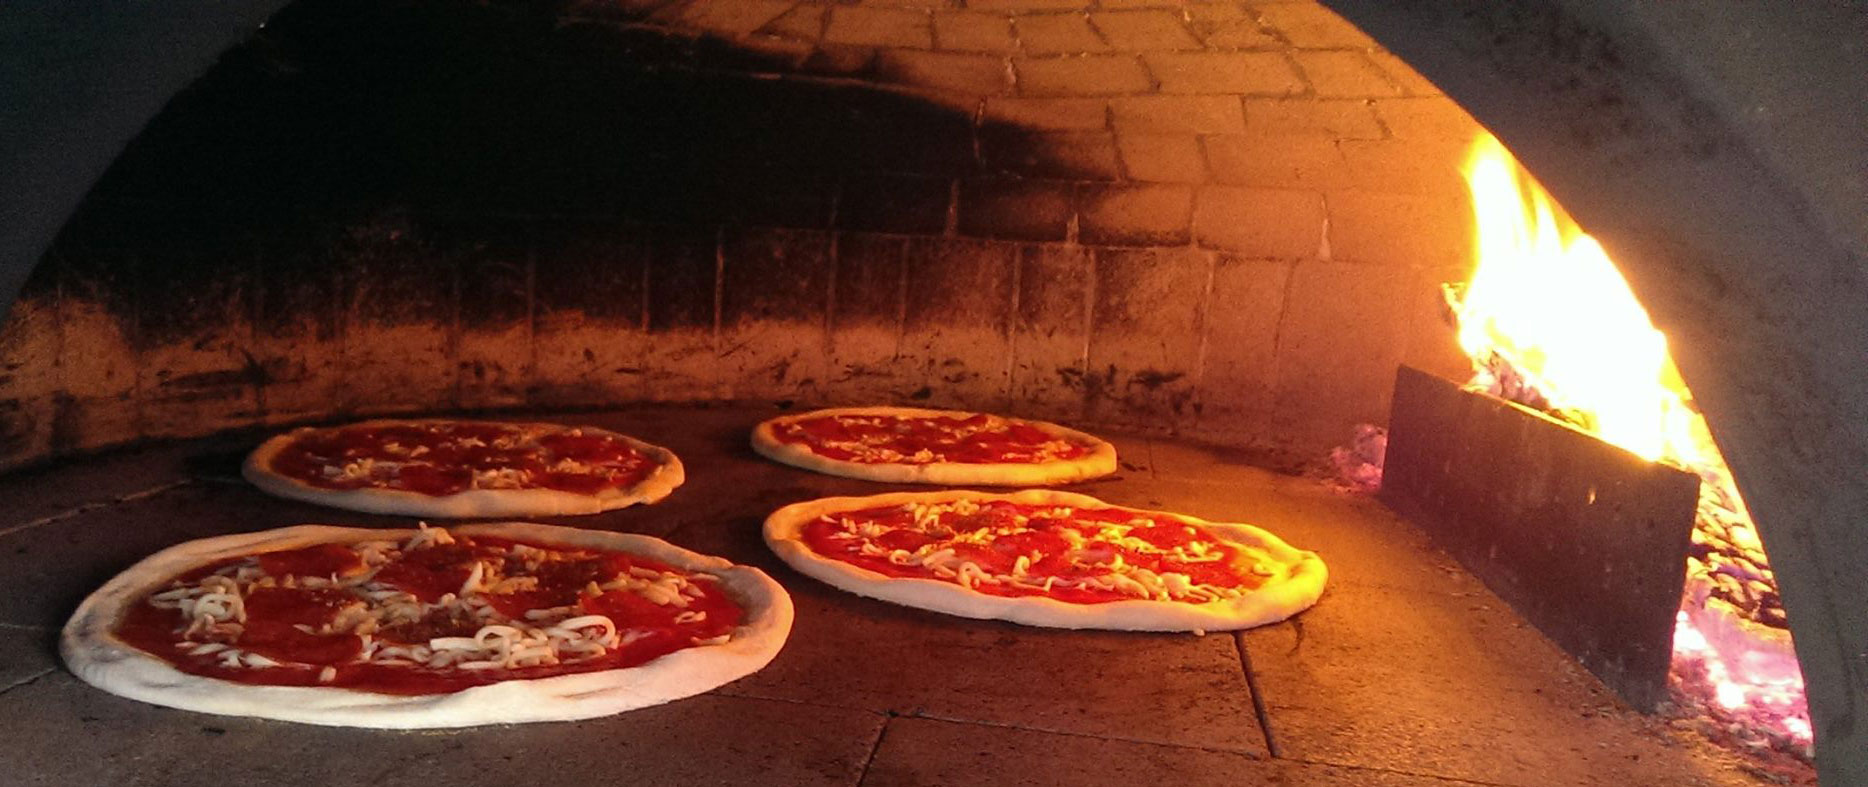 oven_four_deep_fire_white_hot